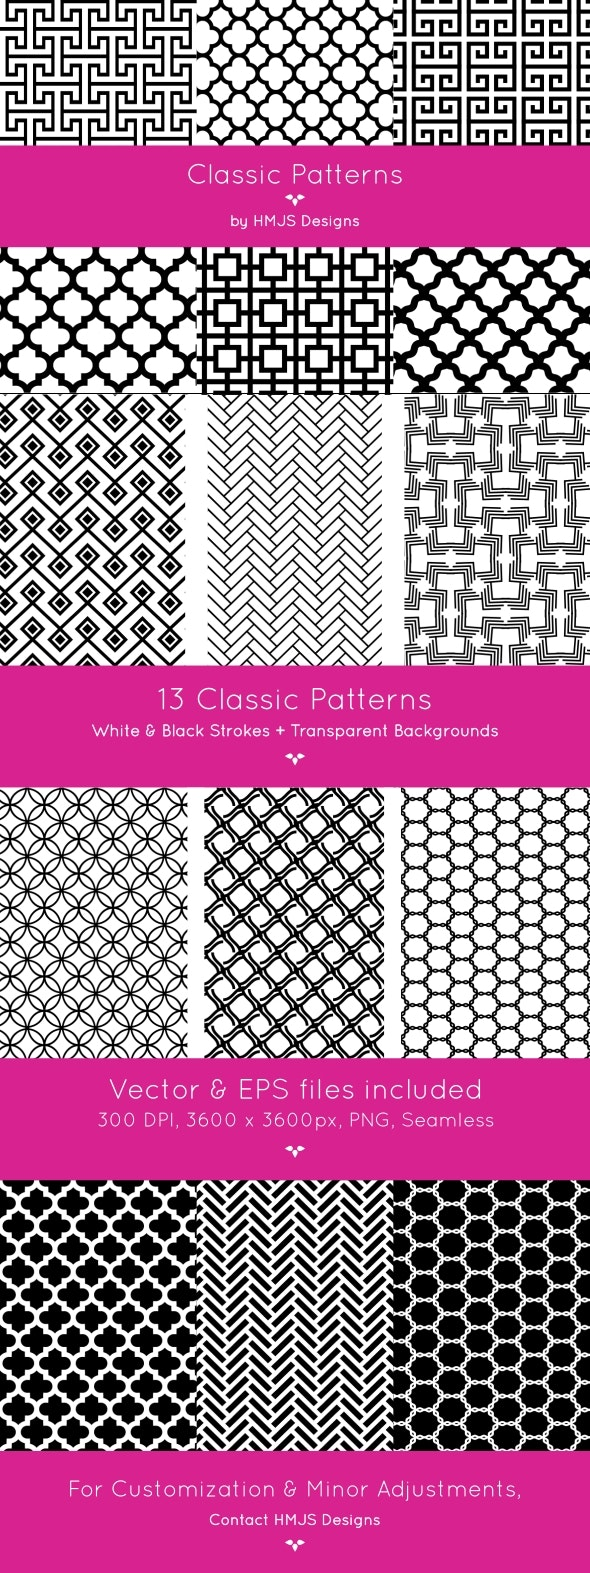 Classic Patterns - Textures / Fills / Patterns Photoshop